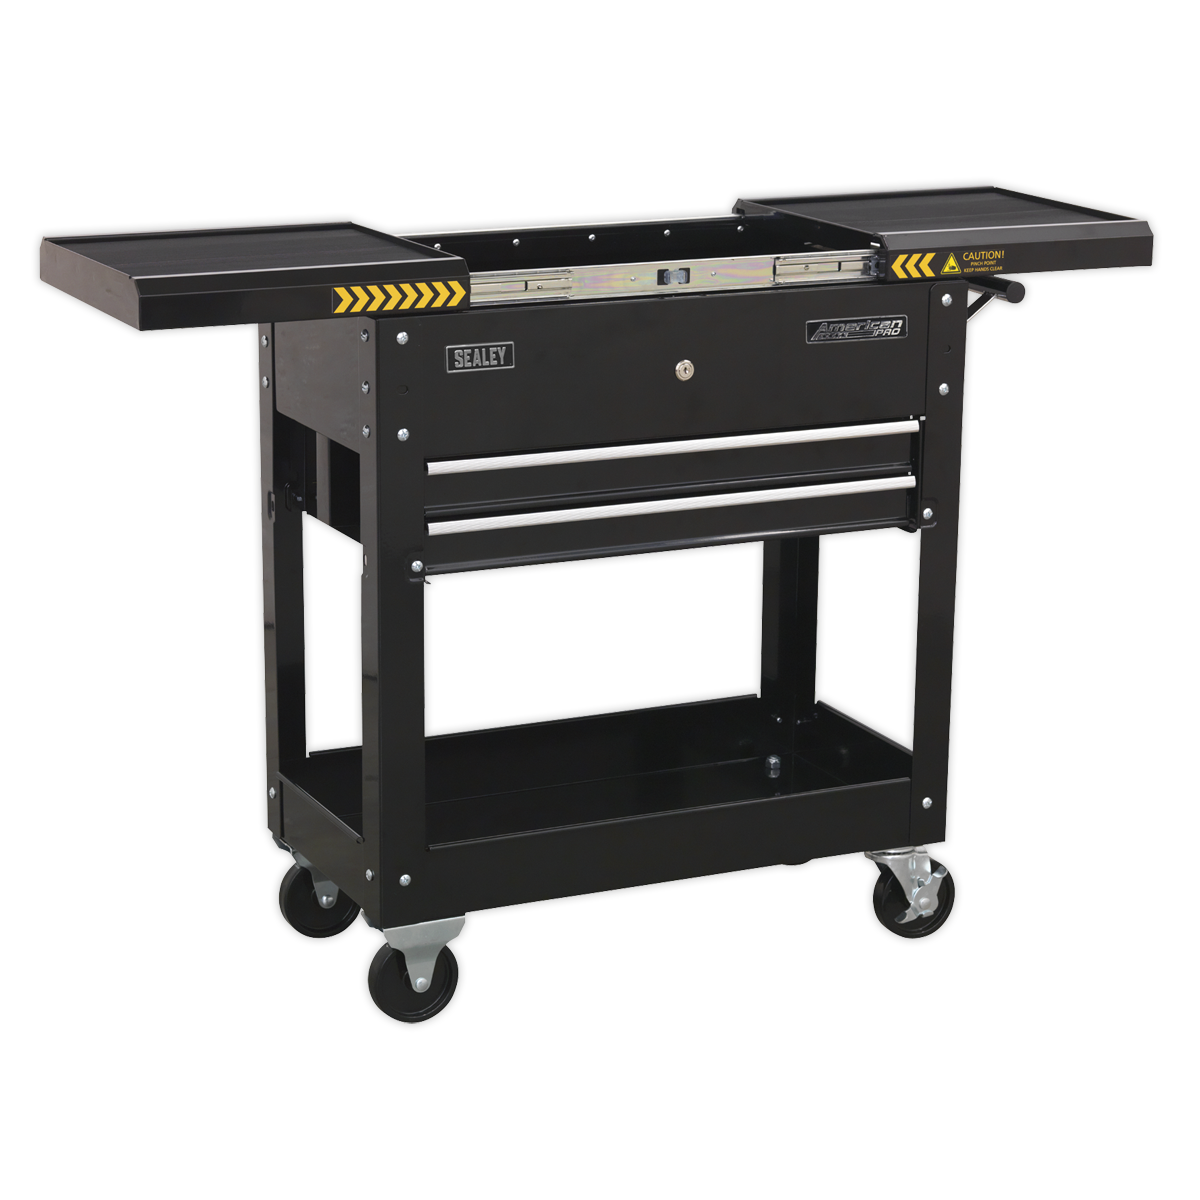 Sealey Mobile Tool & Parts Trolley - Black AP705MB | Heavy gauge steel construction with lockable sliding top on smooth ball bearing slides. | toolforce.ie